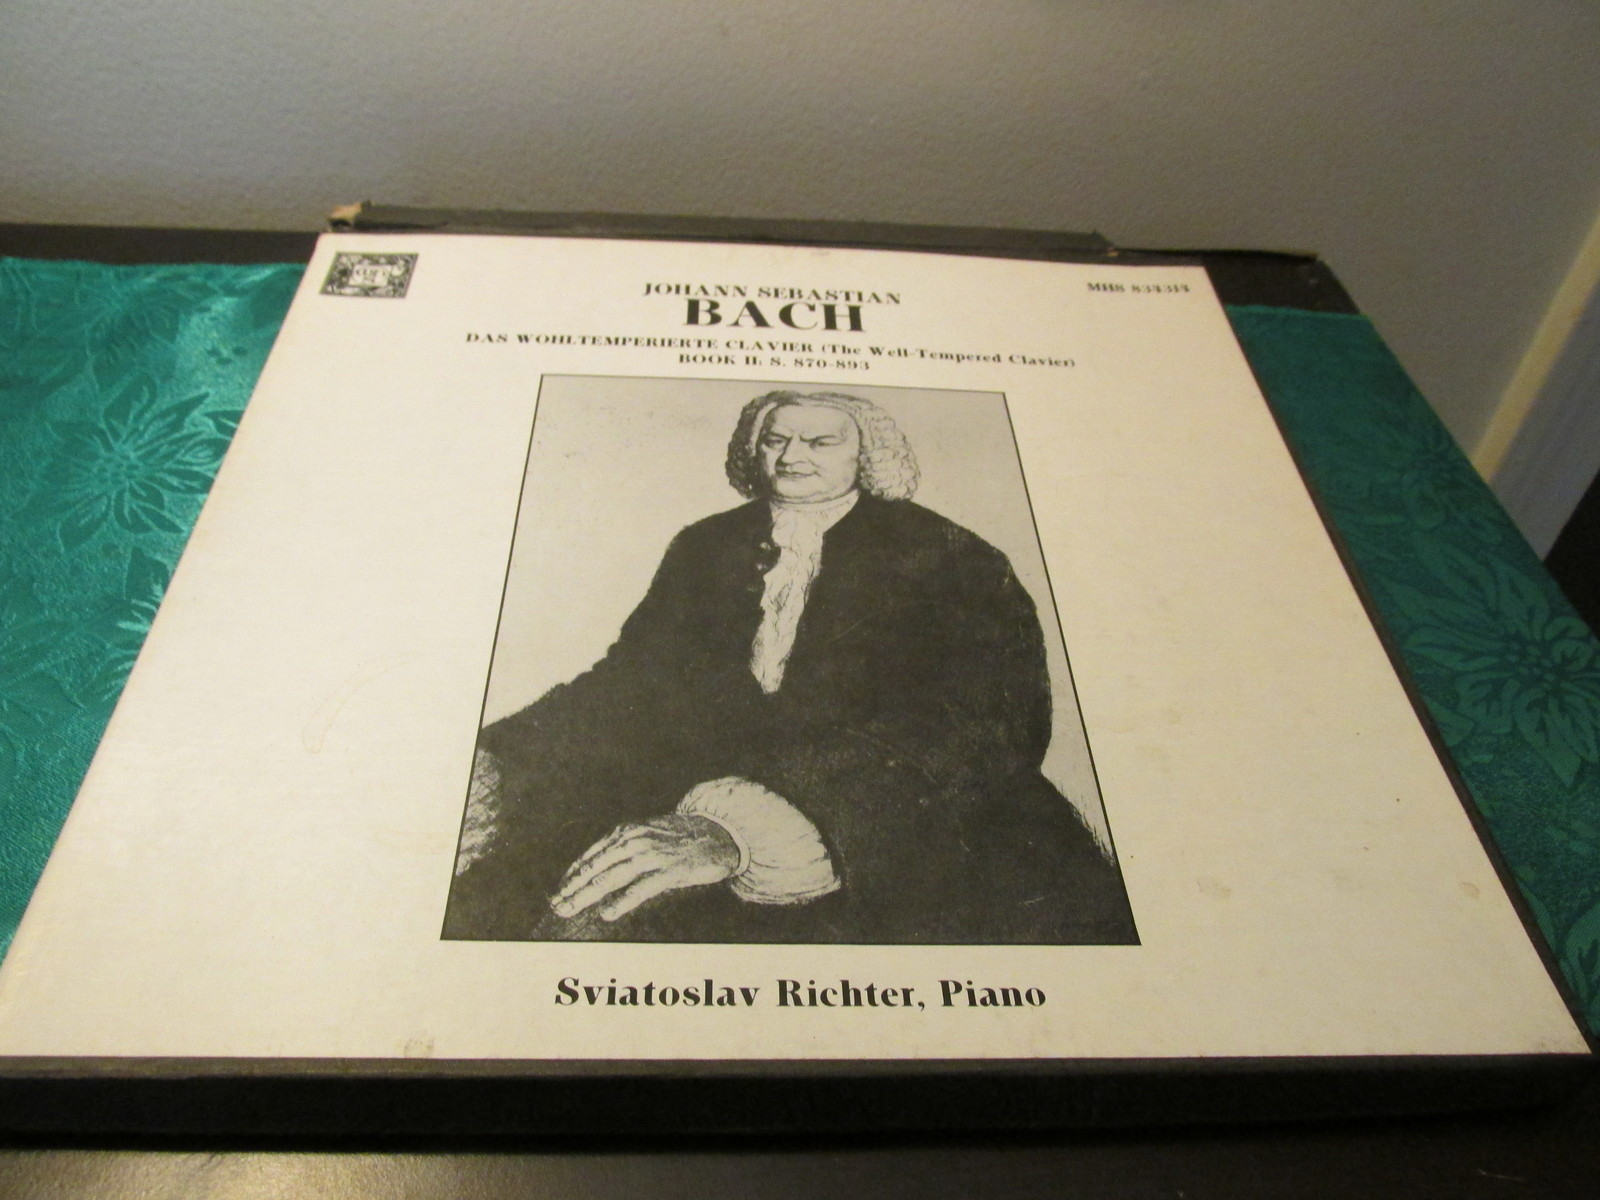 Johann Sebastian Bach Sviatoslav Richer, Piano Three Record Albums